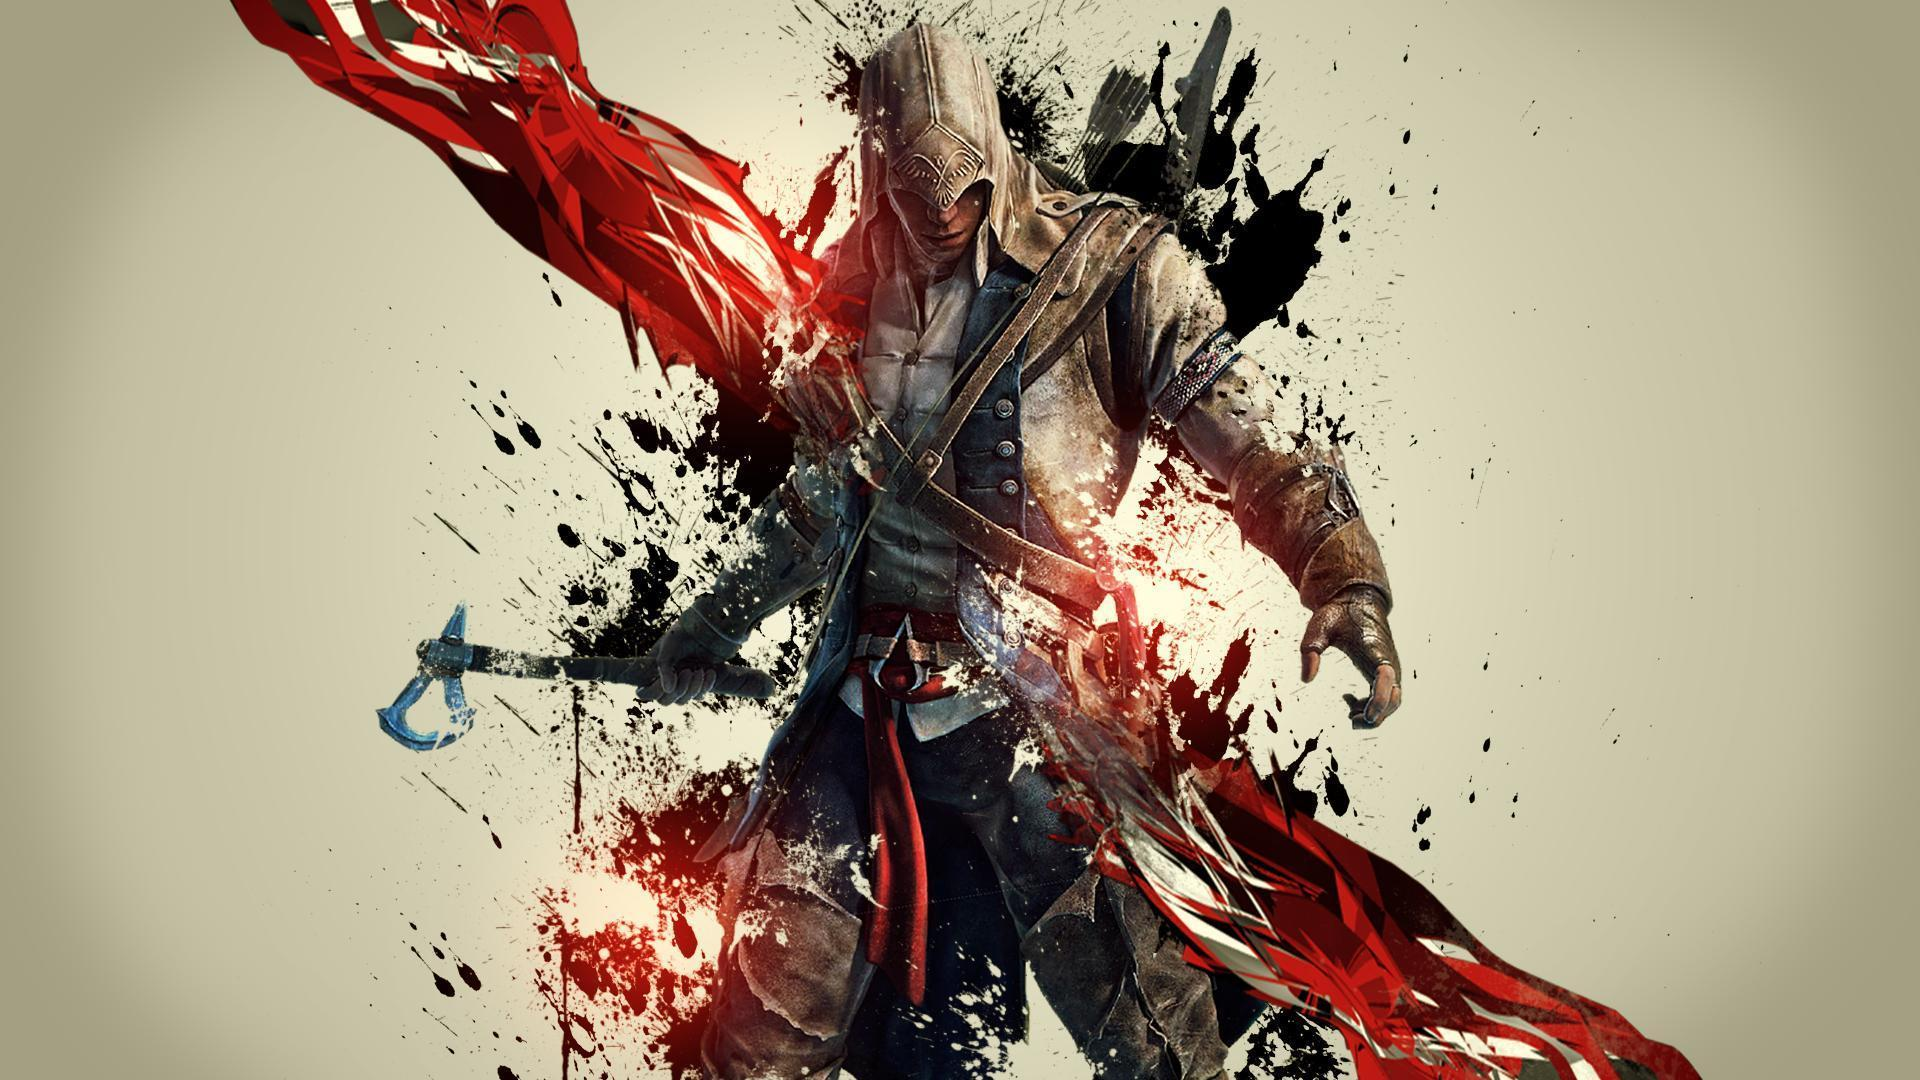 Assassins Creed 3 Desktop Wallpaper, Pictures | Cool Wallpapers